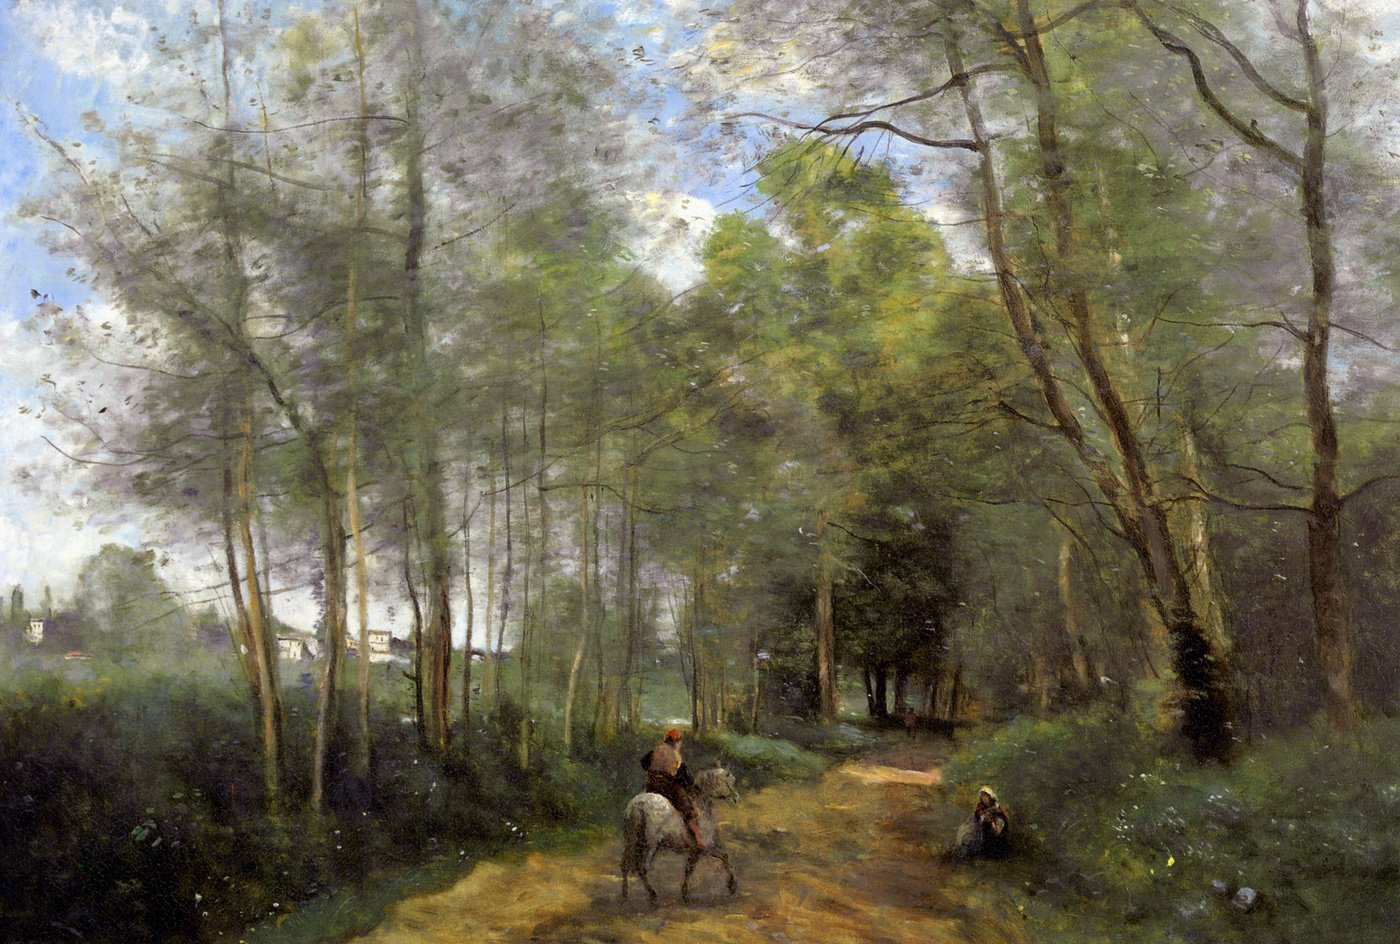 Jean-Baptiste-Camille Corot background